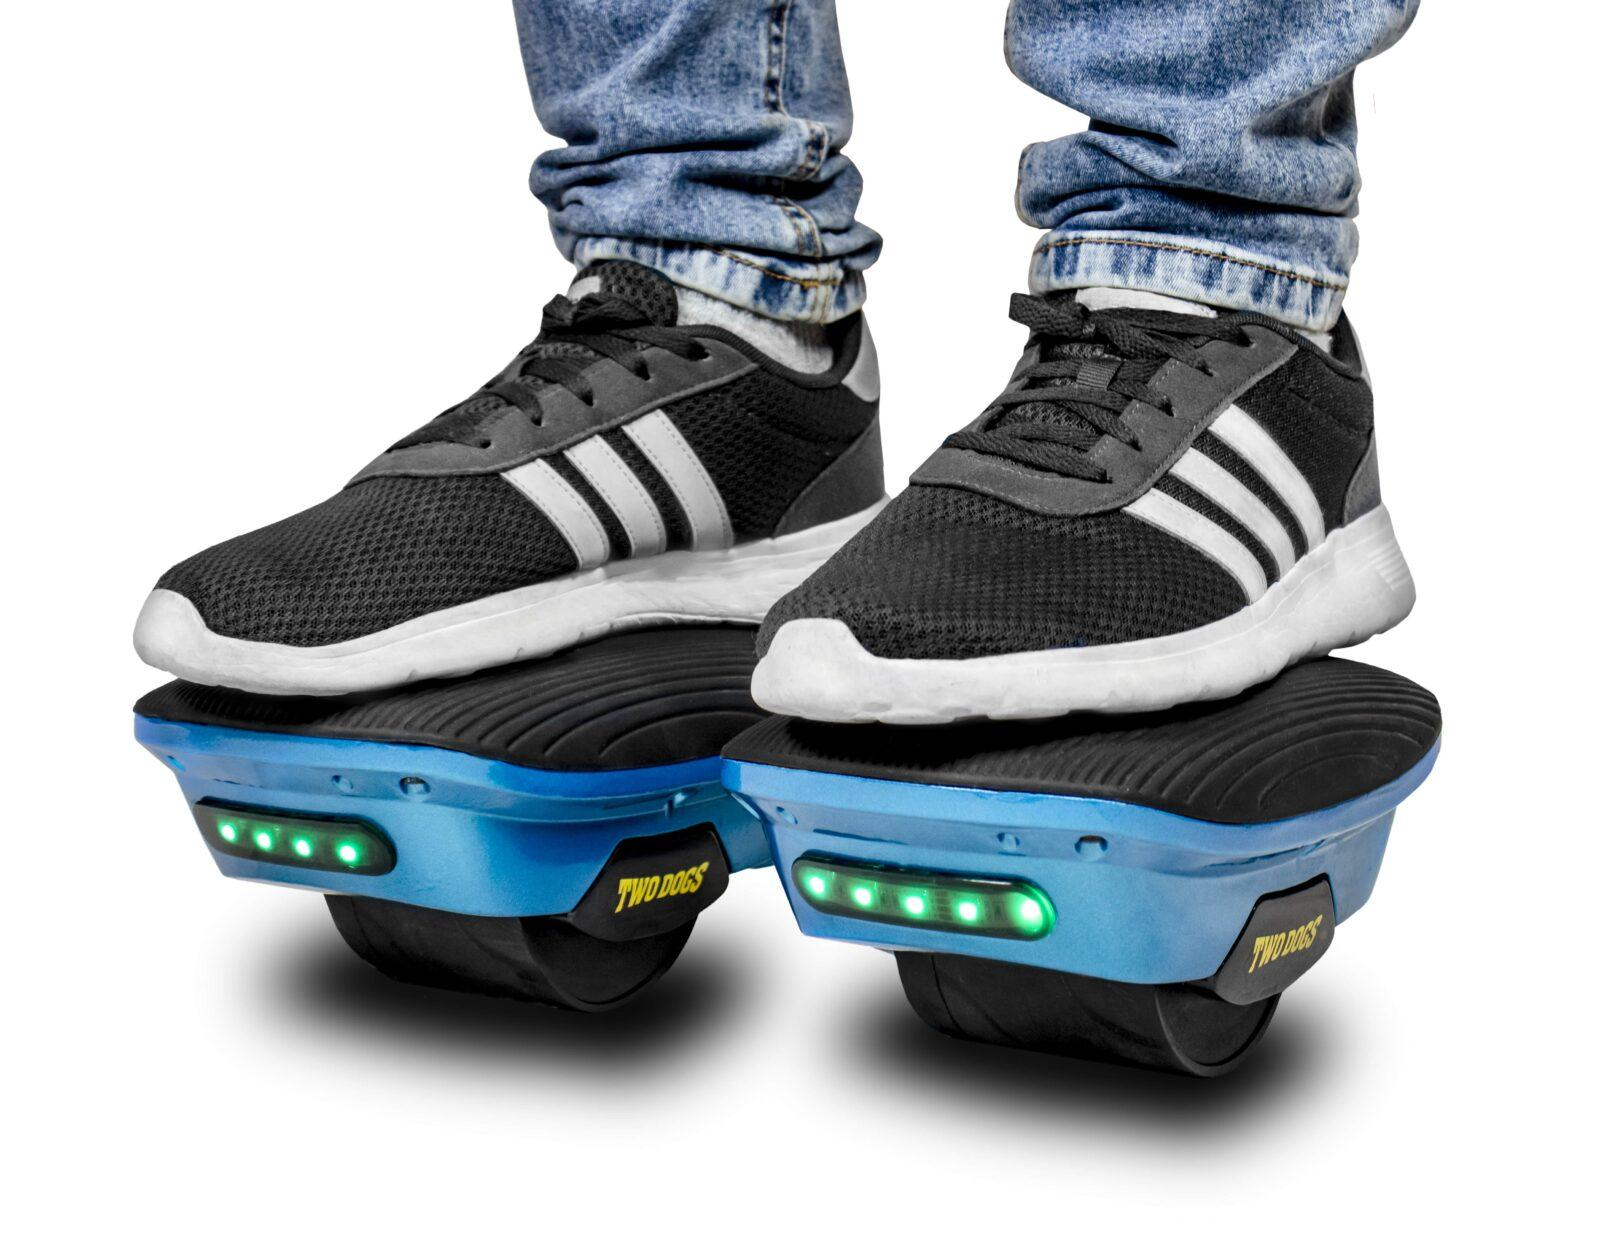 hovershoes patins elétrico Two Dogs